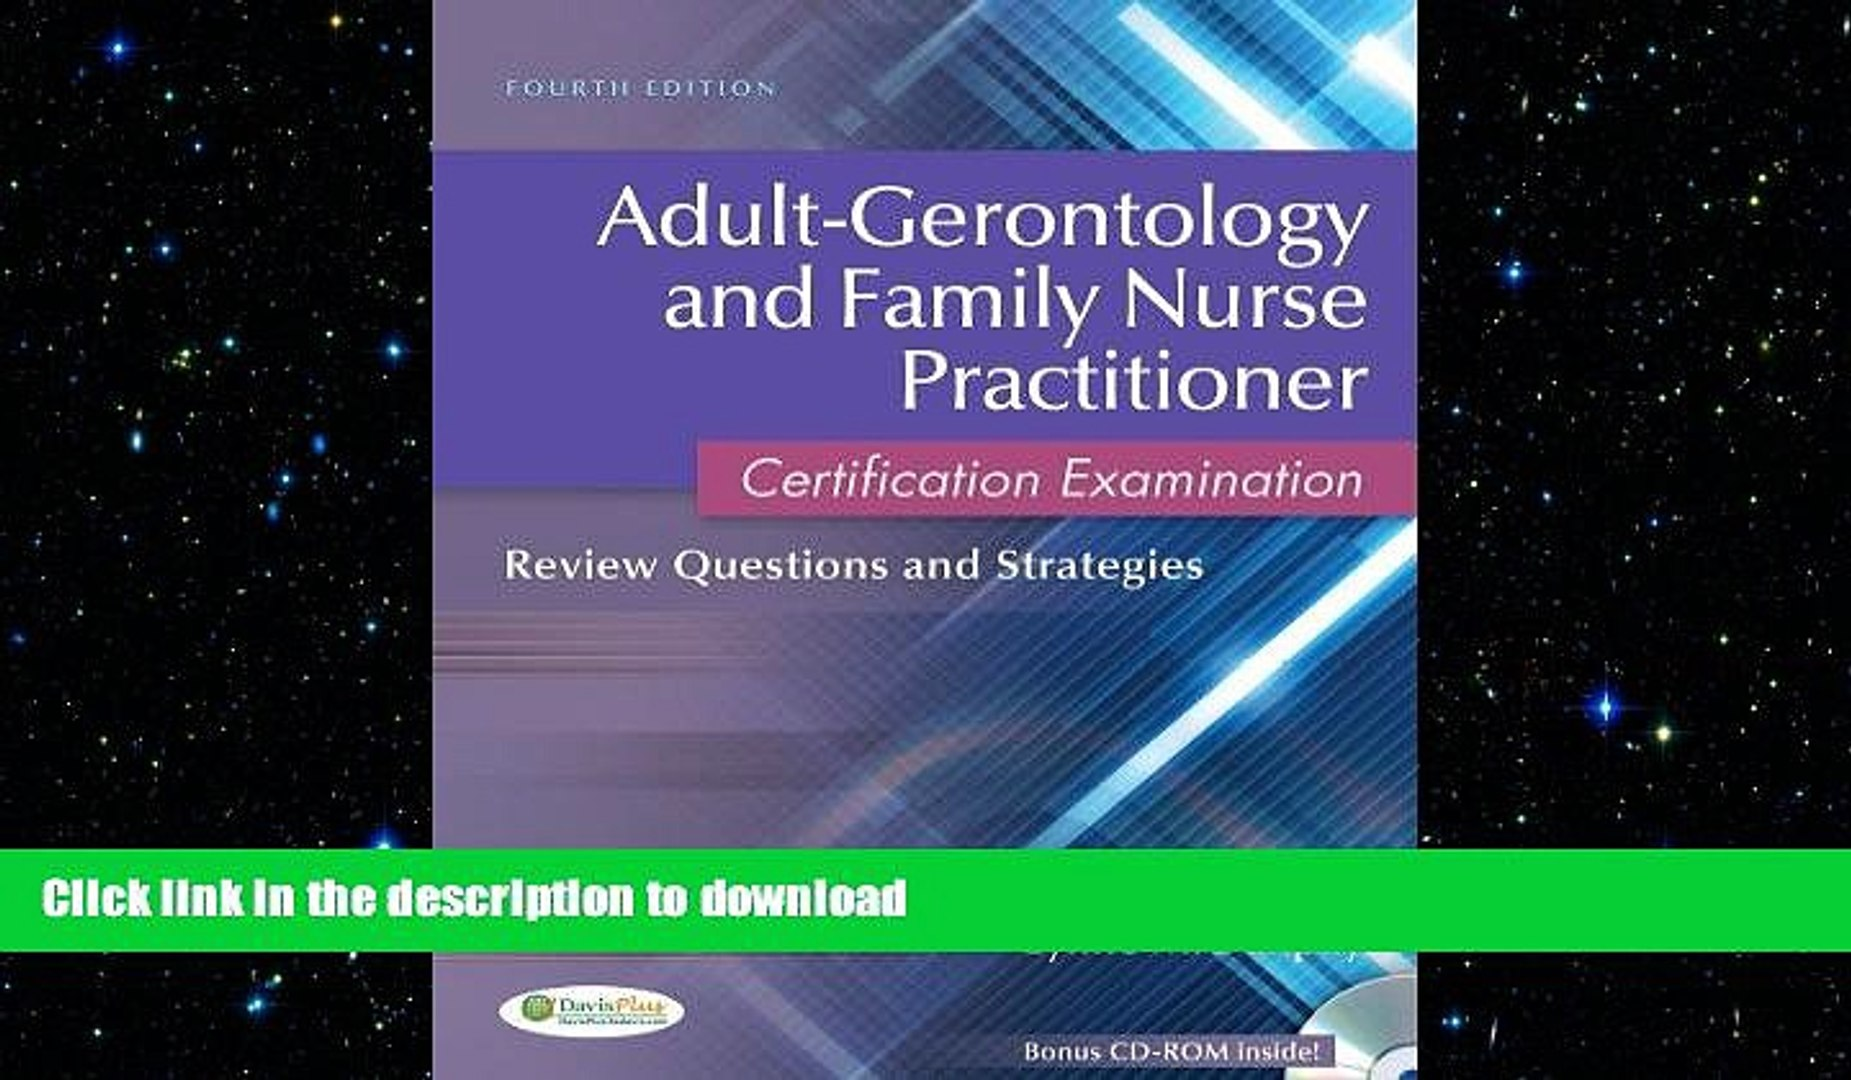 Adult Cd Universe hardcover adult-gerontology and family nurse practitioner certification  examination: review